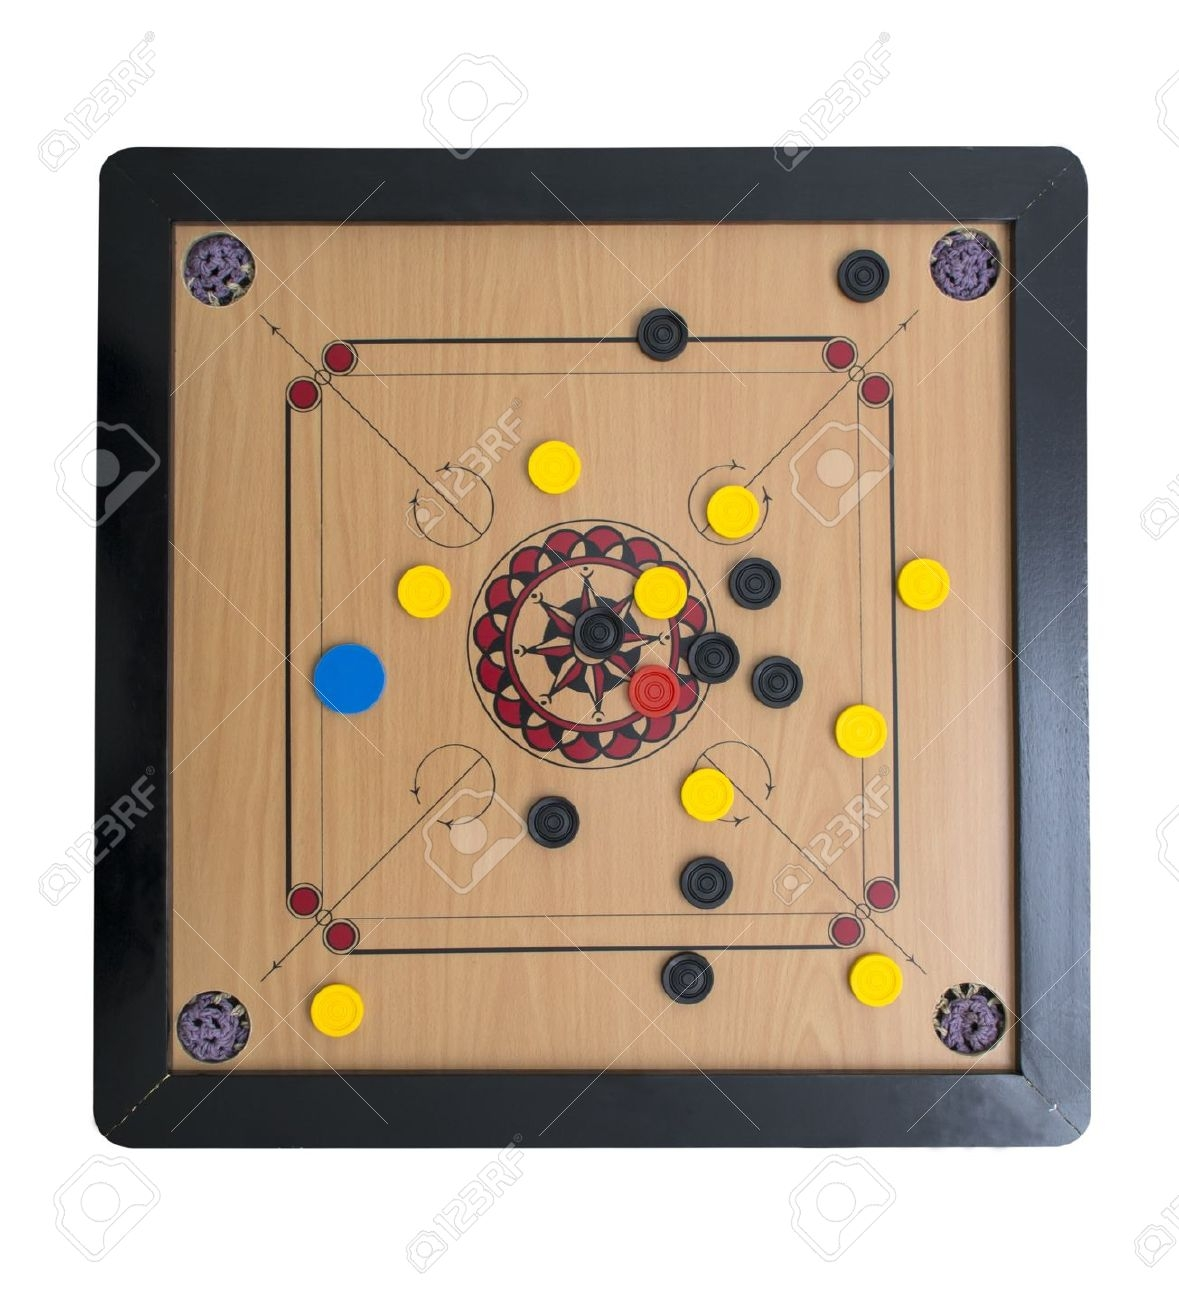 Carrom Board Game Clipart.